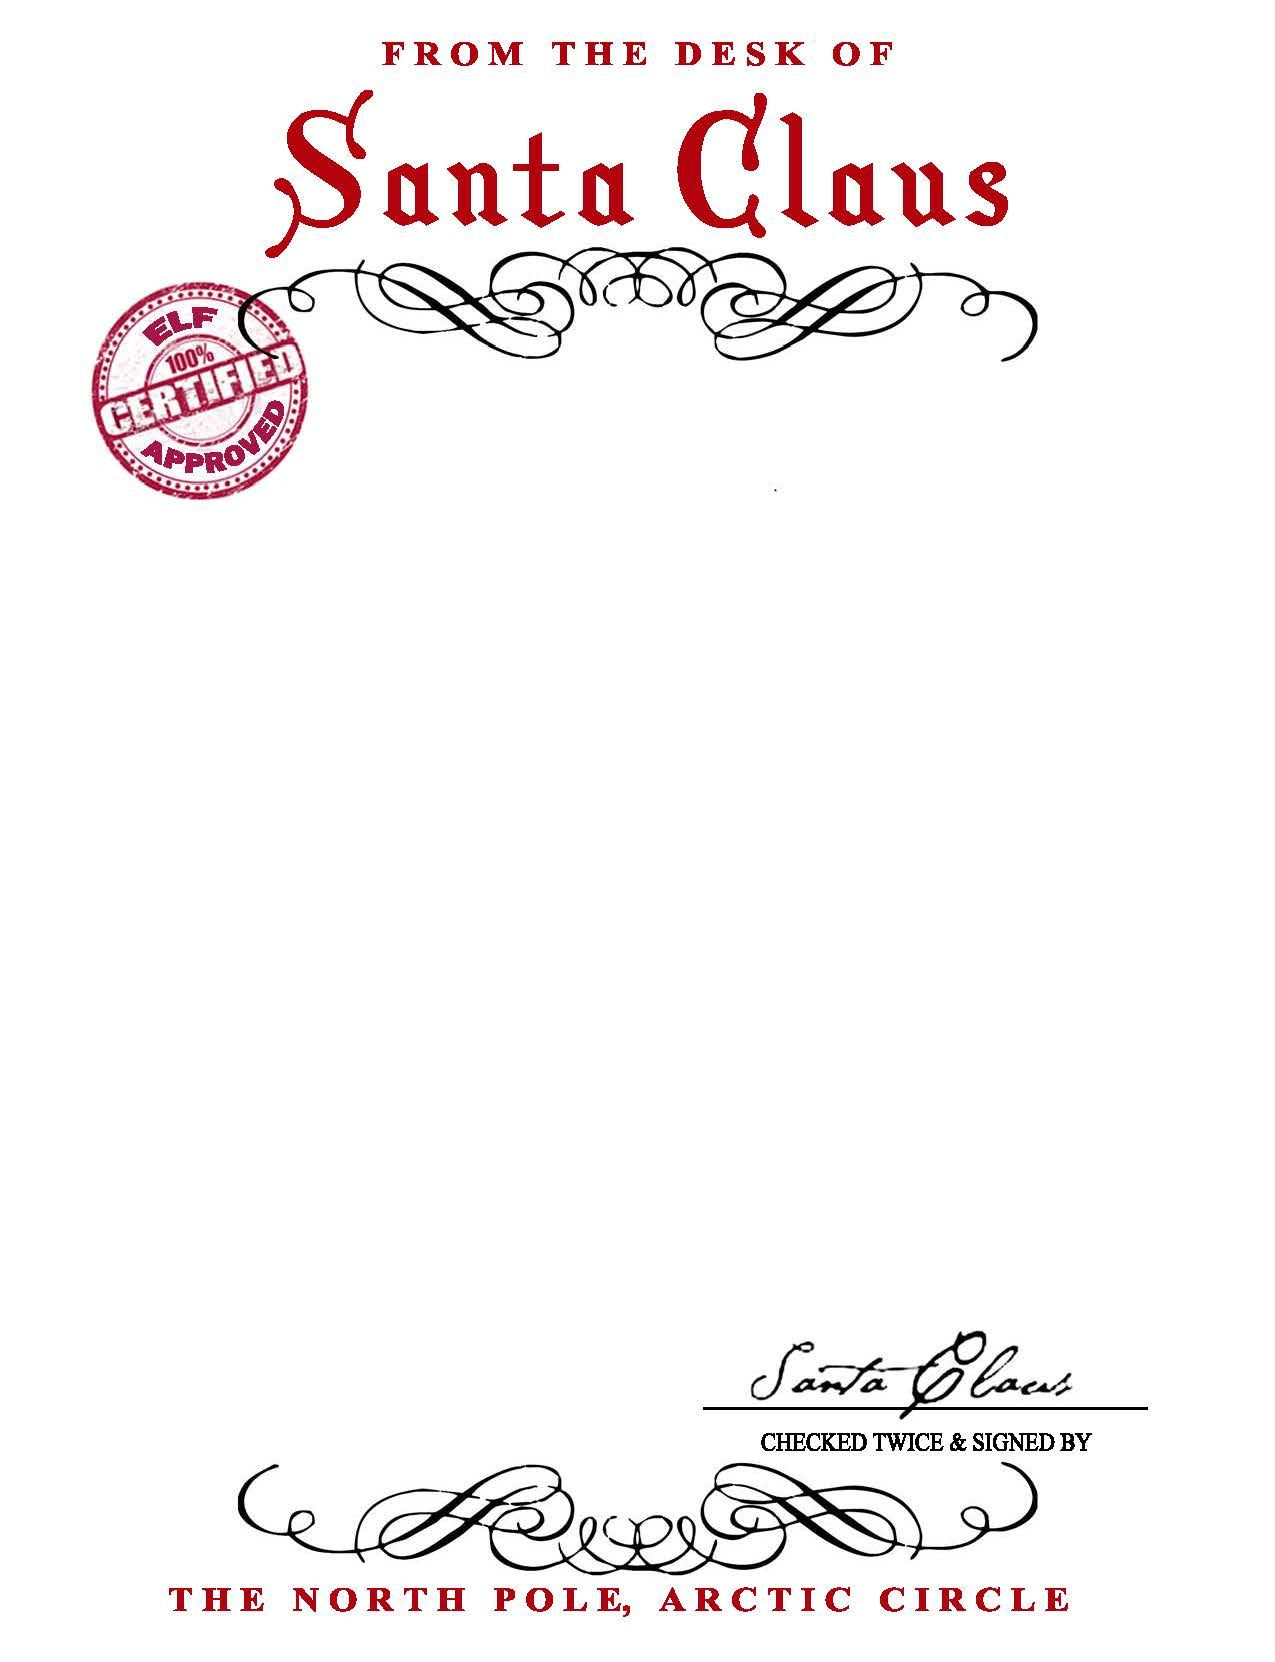 Free Printable Letter to Santa Template - Santa Claus Letterhead Will Bring Lots Of Joy to Children